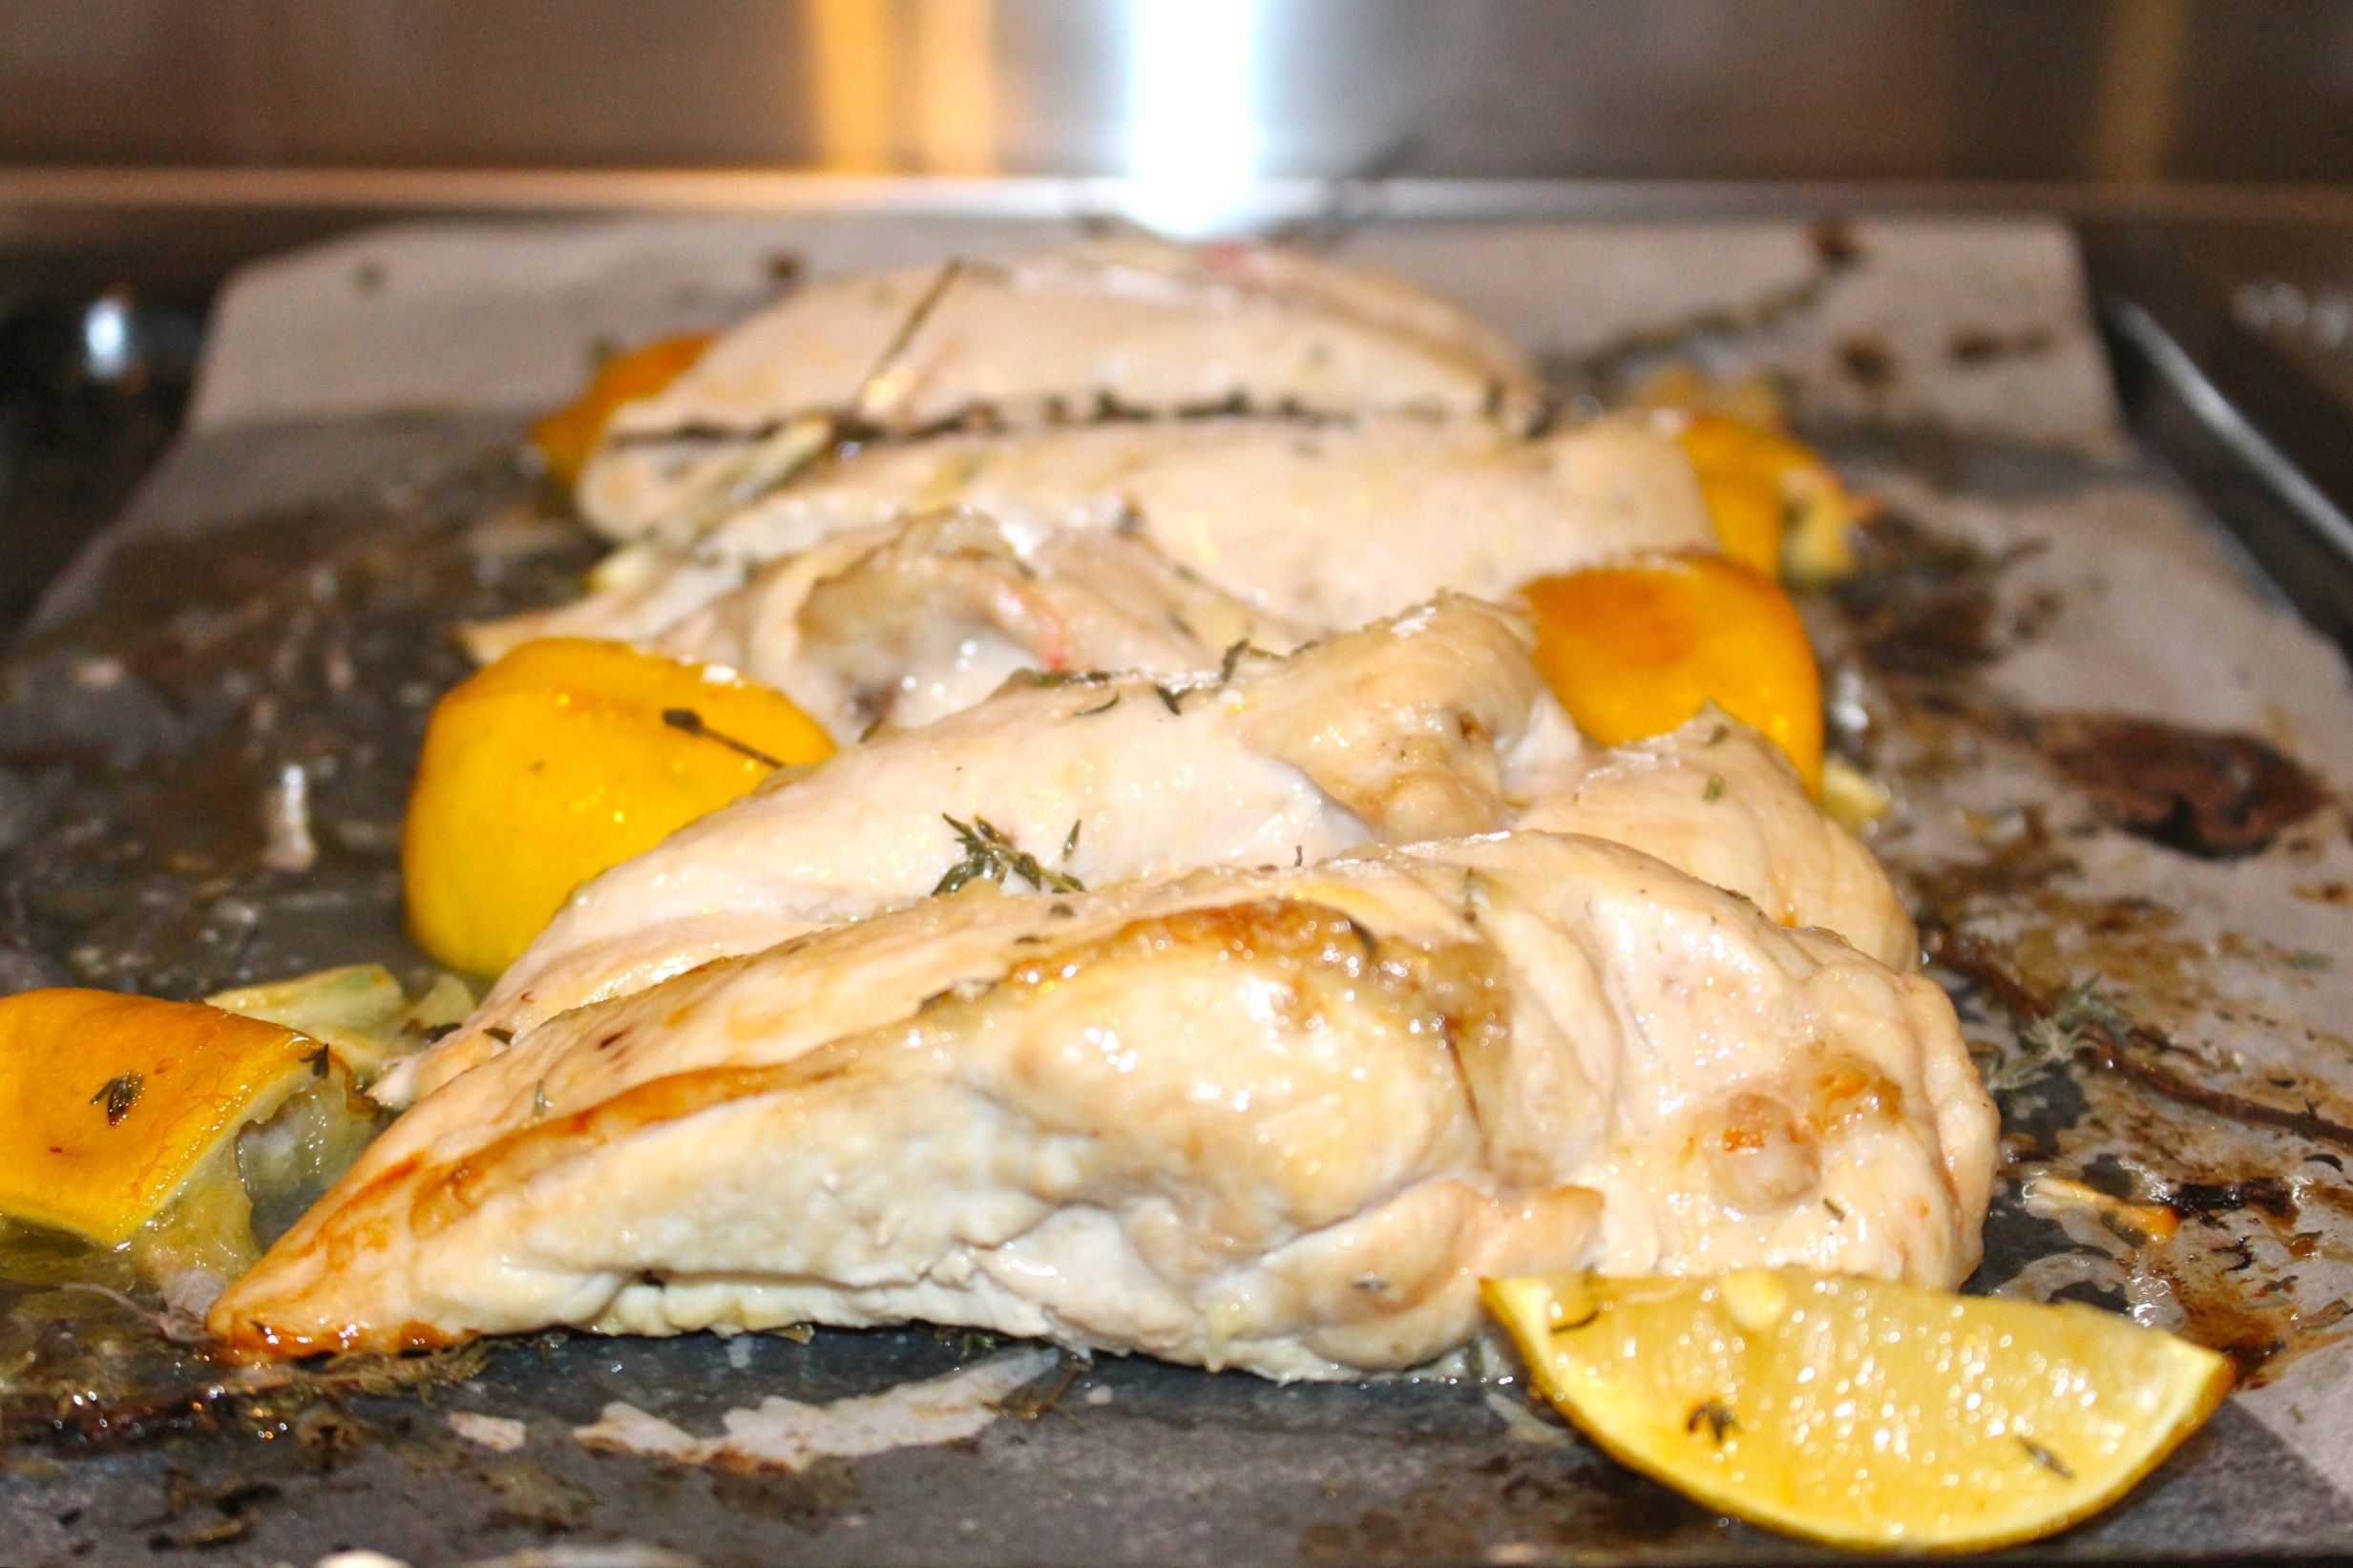 Lemon & Garlic Roasted Chicken Breast